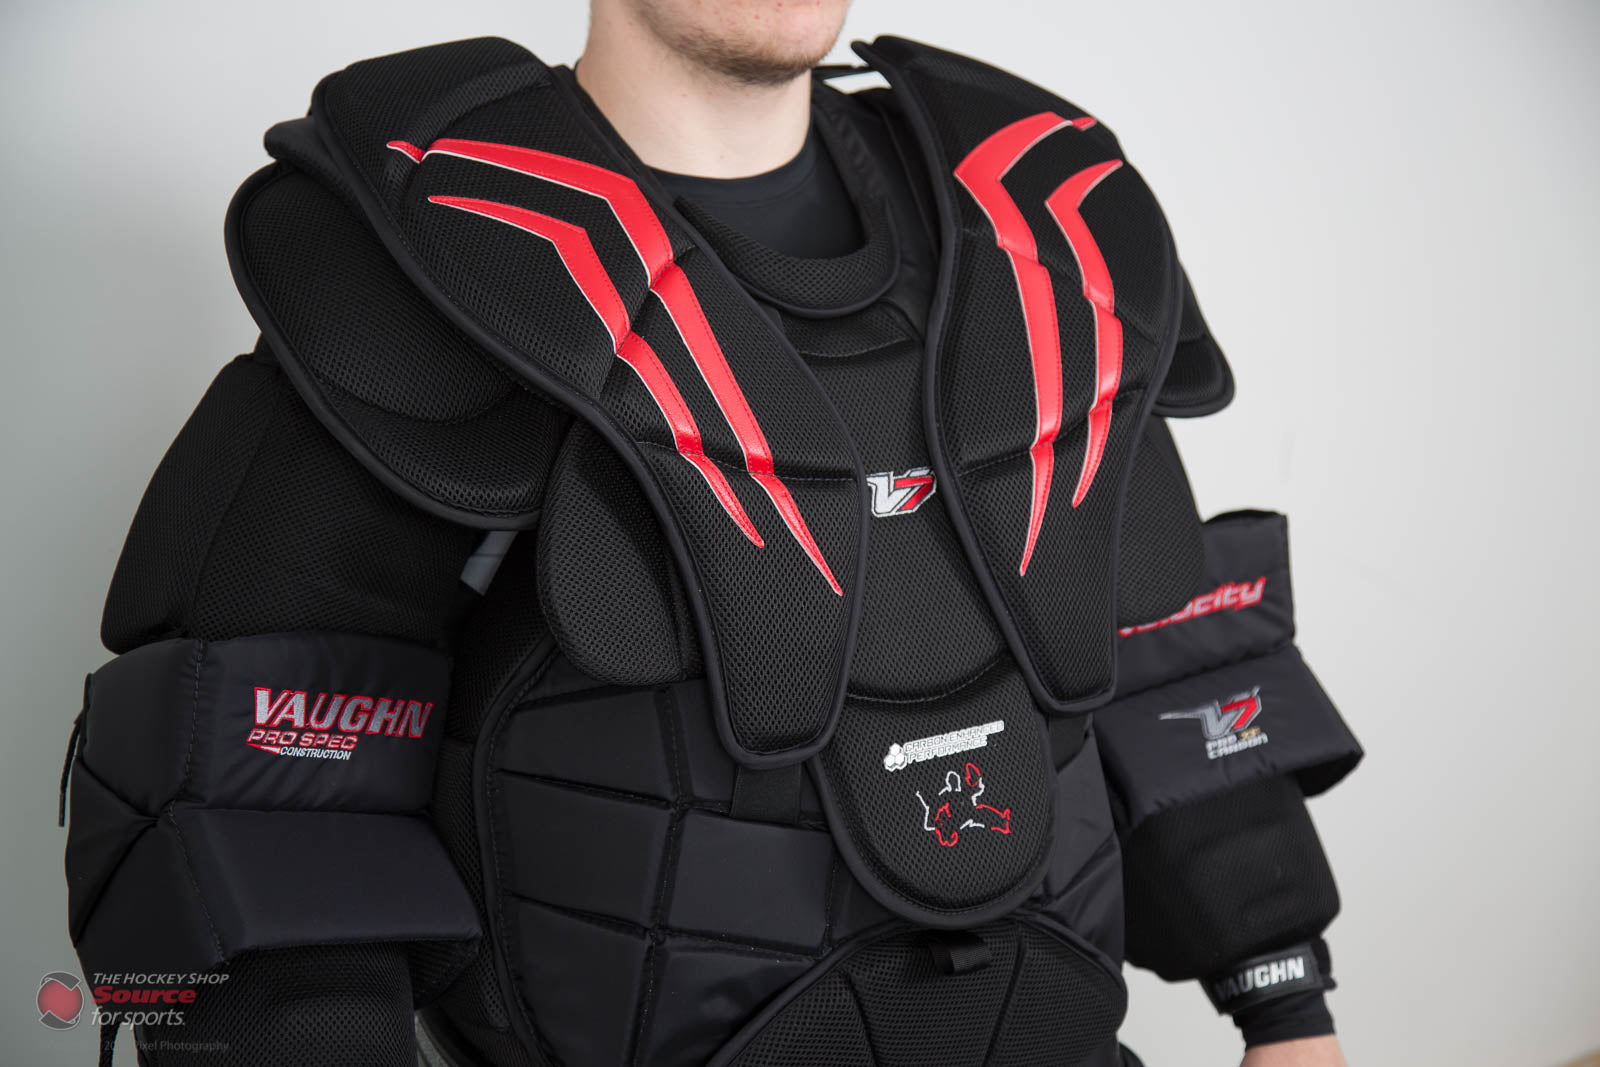 Vaughn V7 XF Pro Carbon Chest Protector - THS Spec